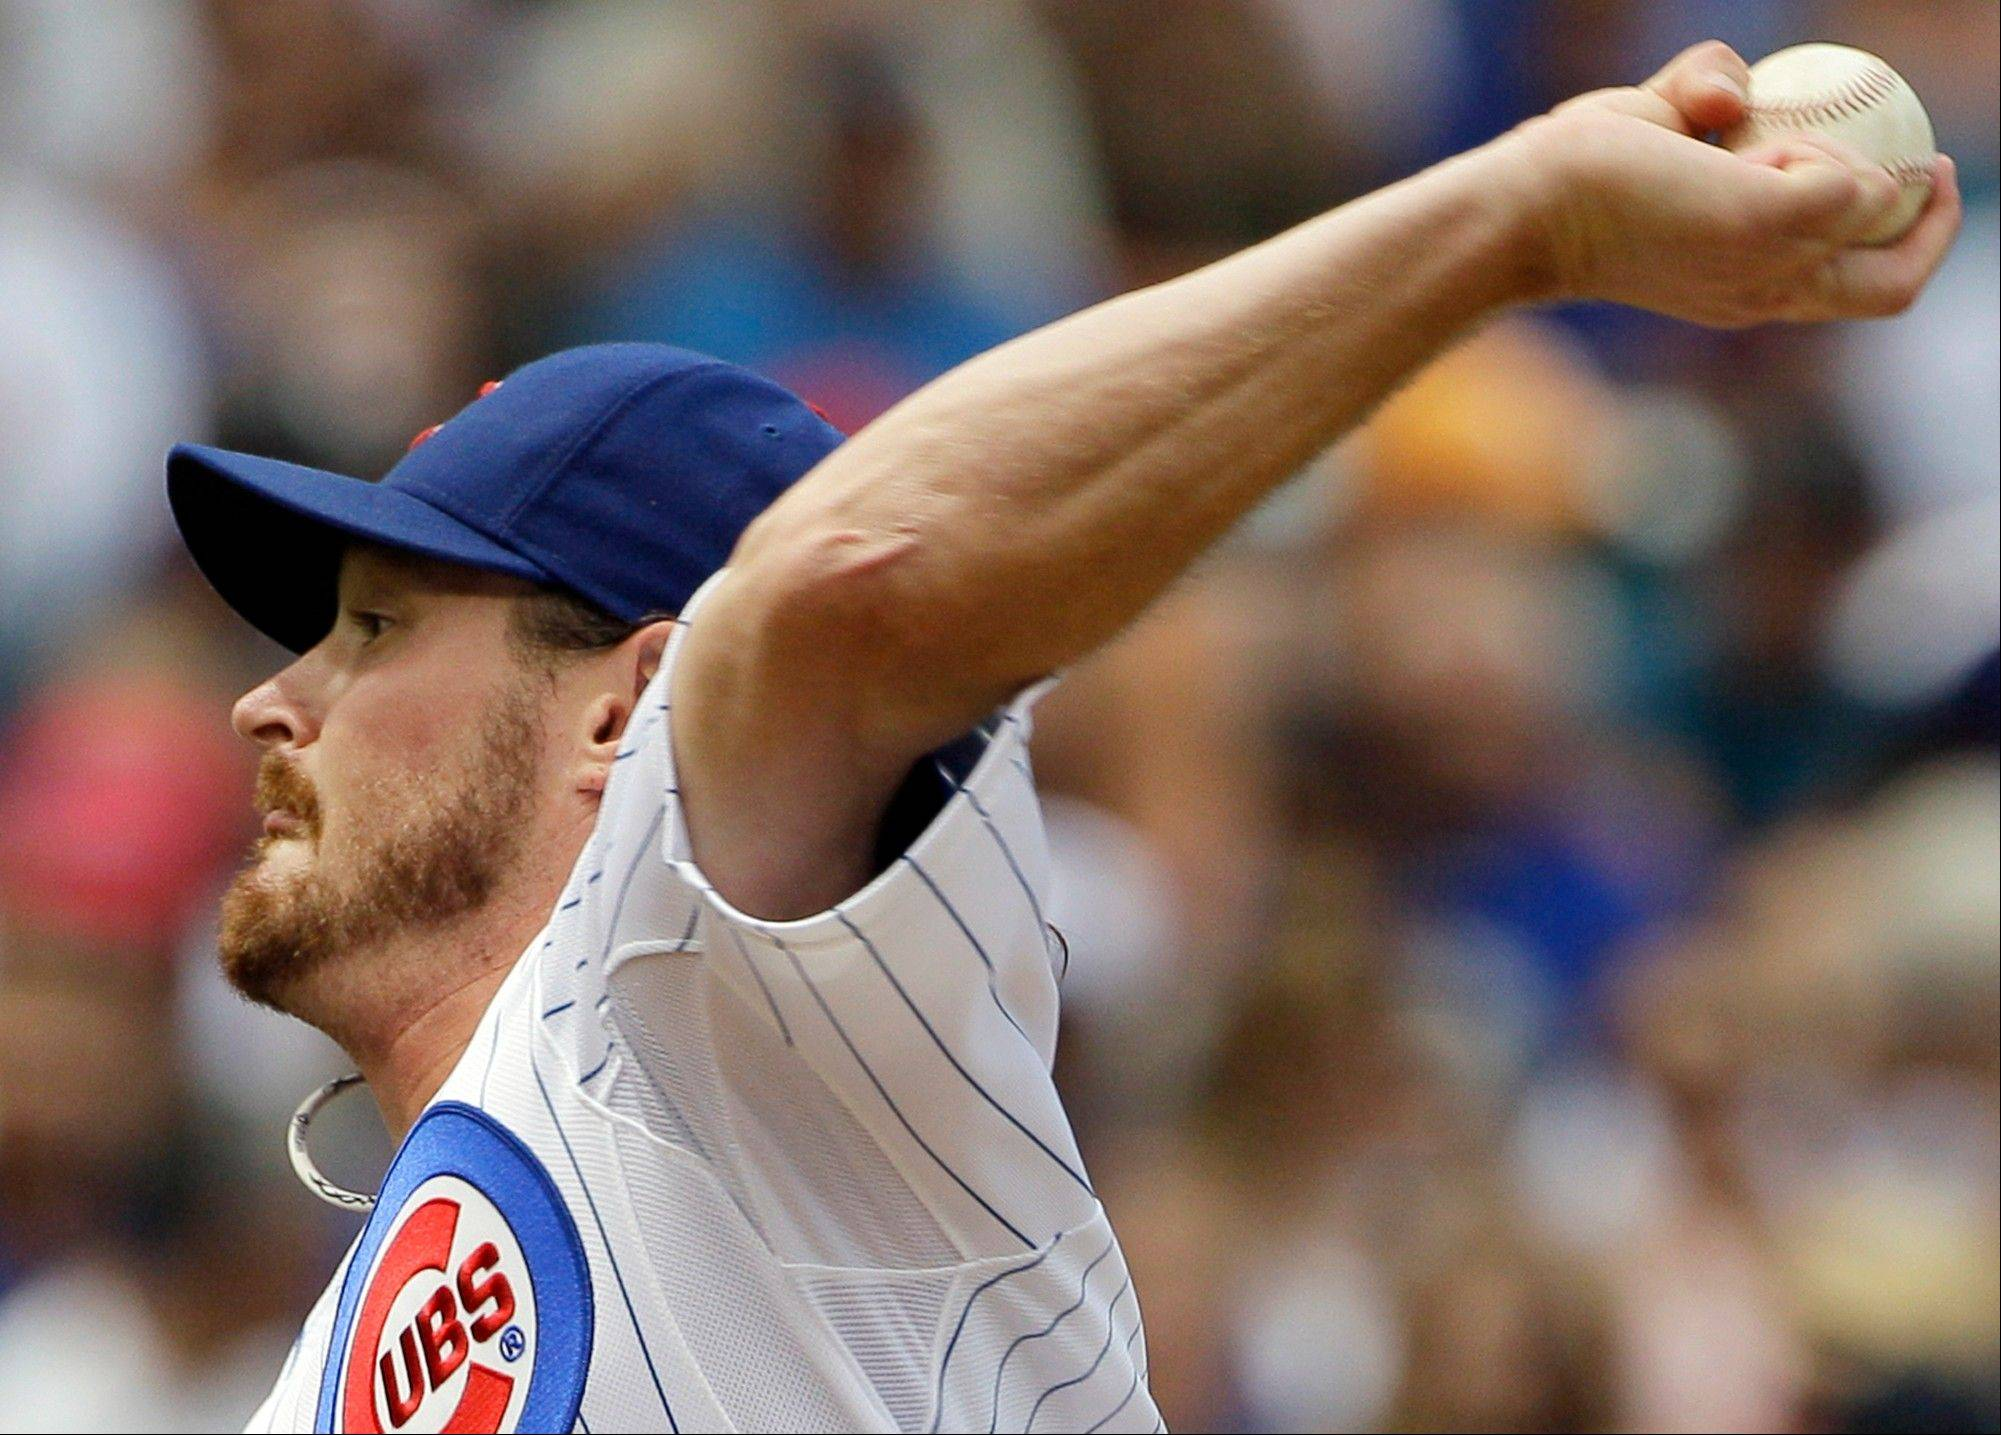 Cubs starter Travis Wood is on a run of 18 consecutive scoreless innings, the most by a Cubs left-handed starter since Ted Lilly in 2008. Wood shut out the Astros on Sunday.